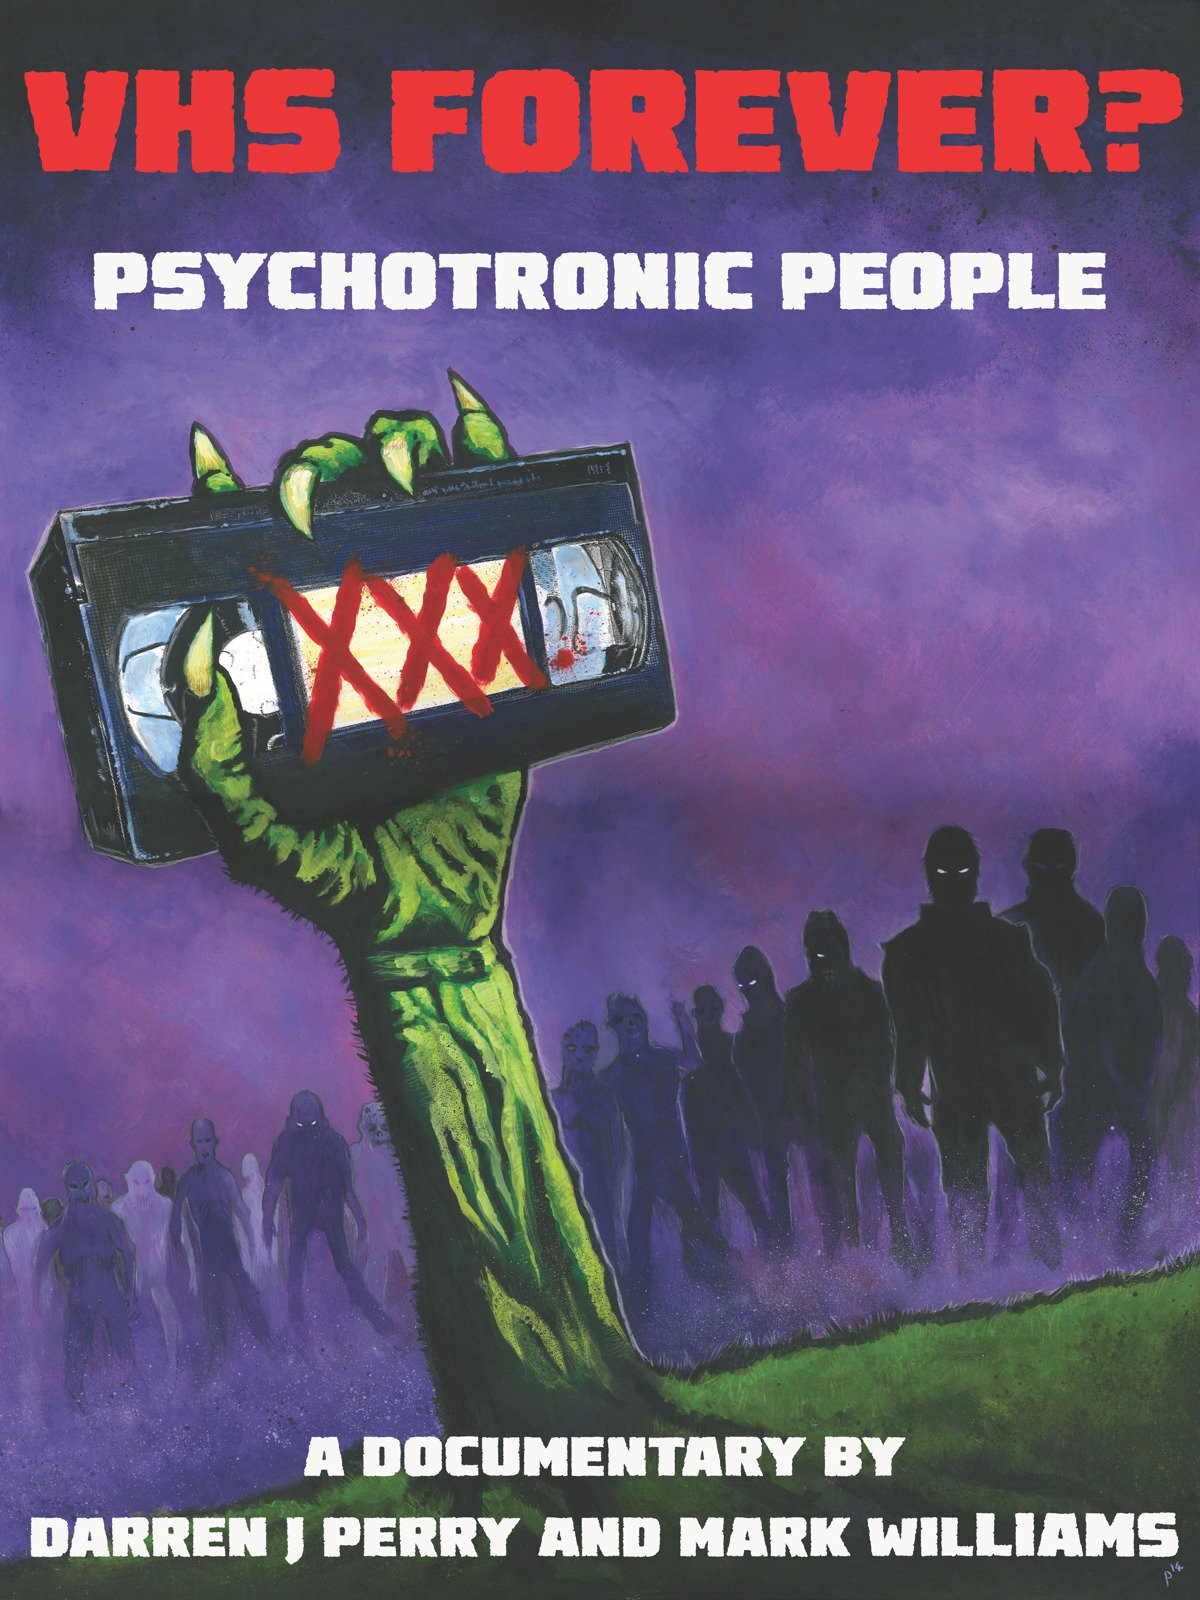 VHS Forever? Psychotronic People